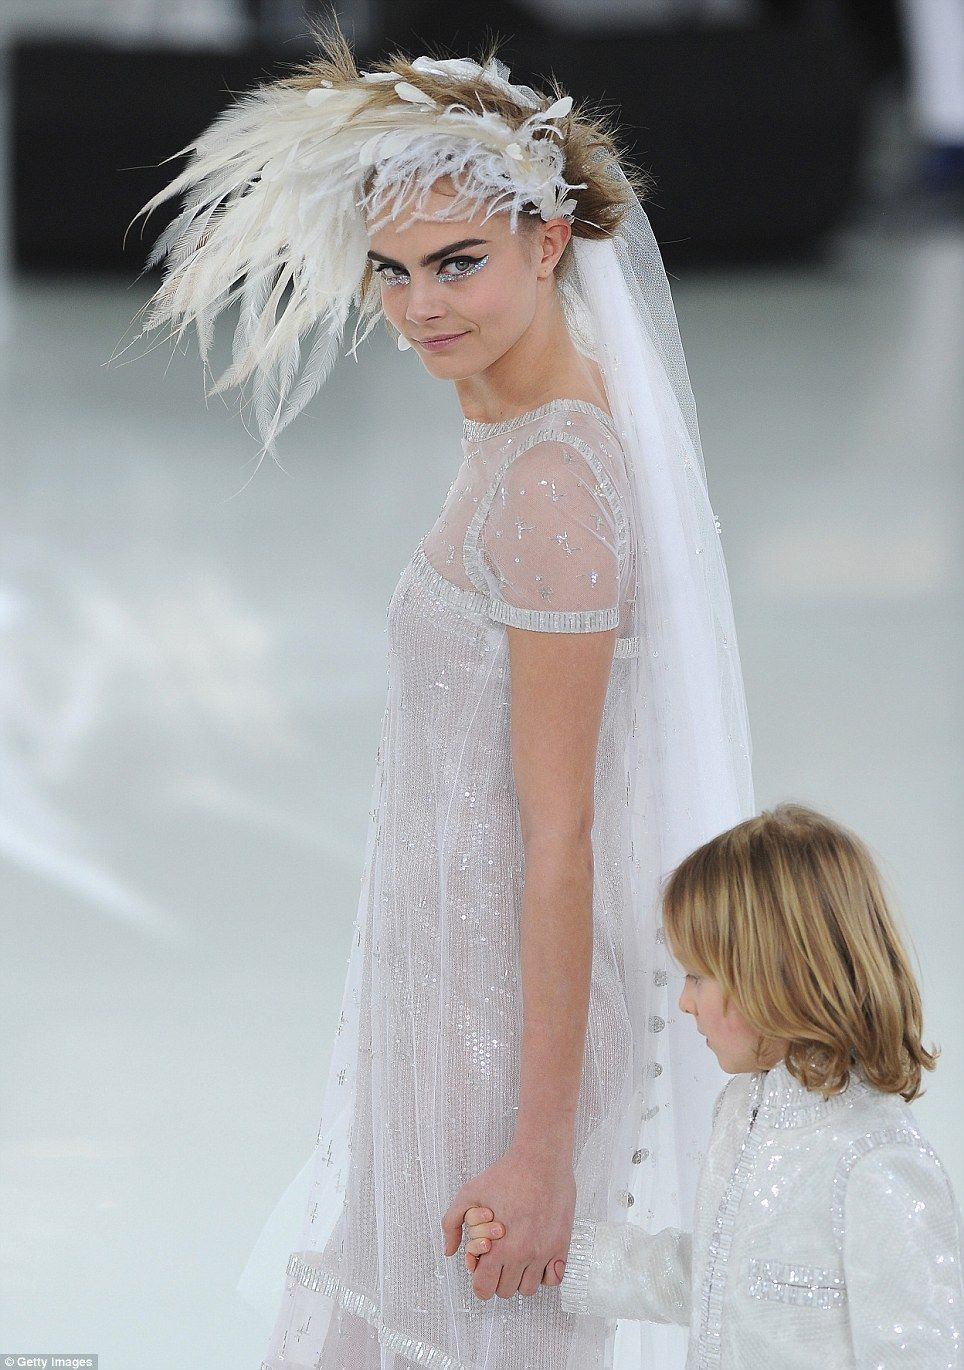 Cara Chanel Haute Couture Paris Fashion Week 2014 Feathers And A Veil